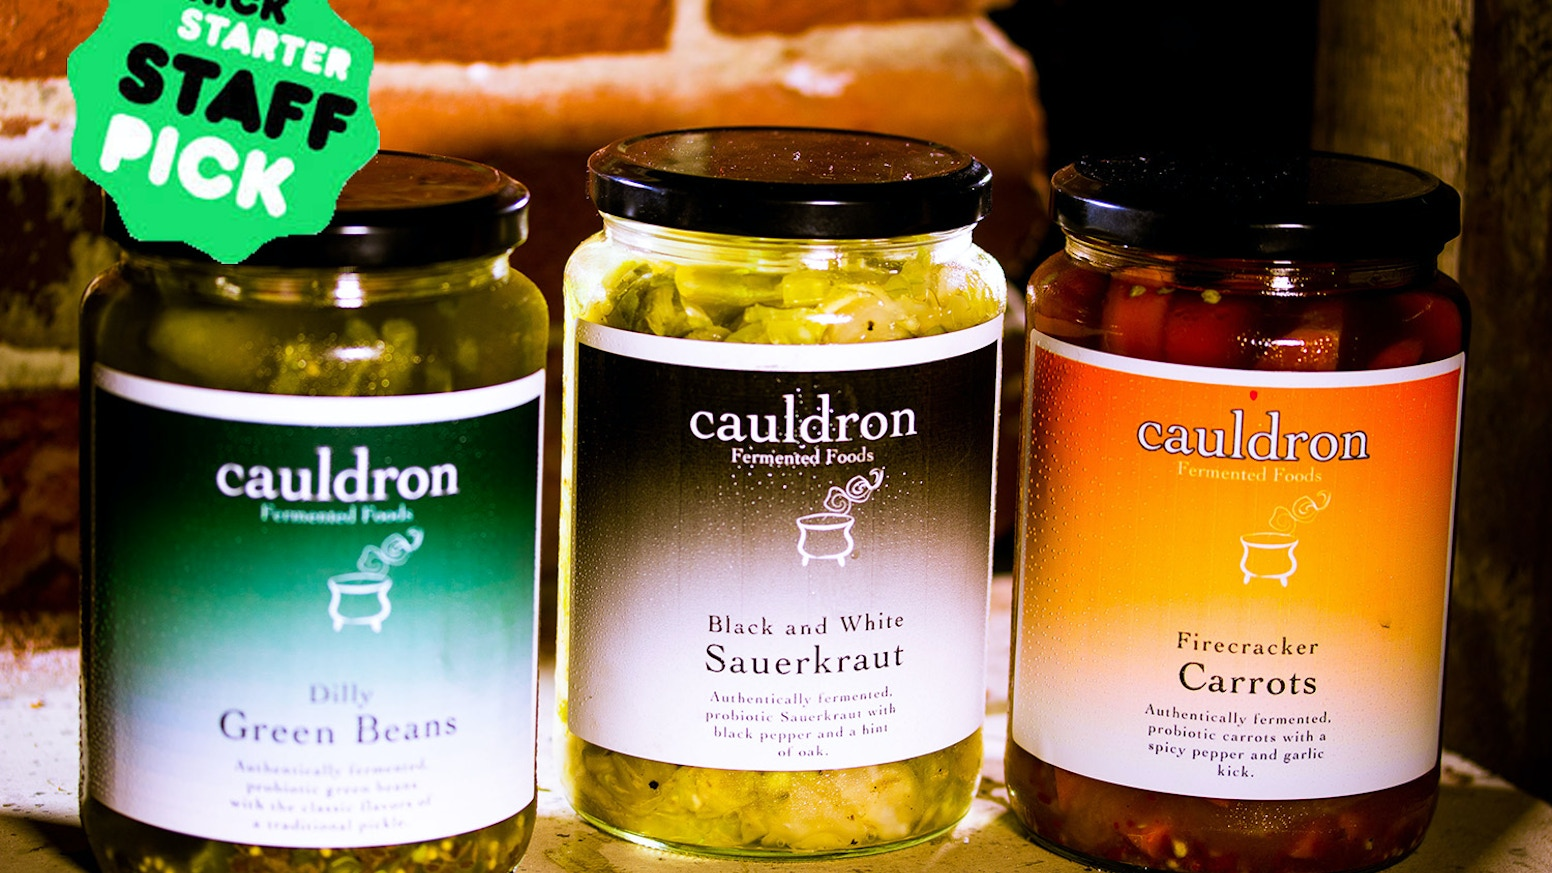 Cauldron fermented foods by cauldron fermented foods for Food s bar unloc